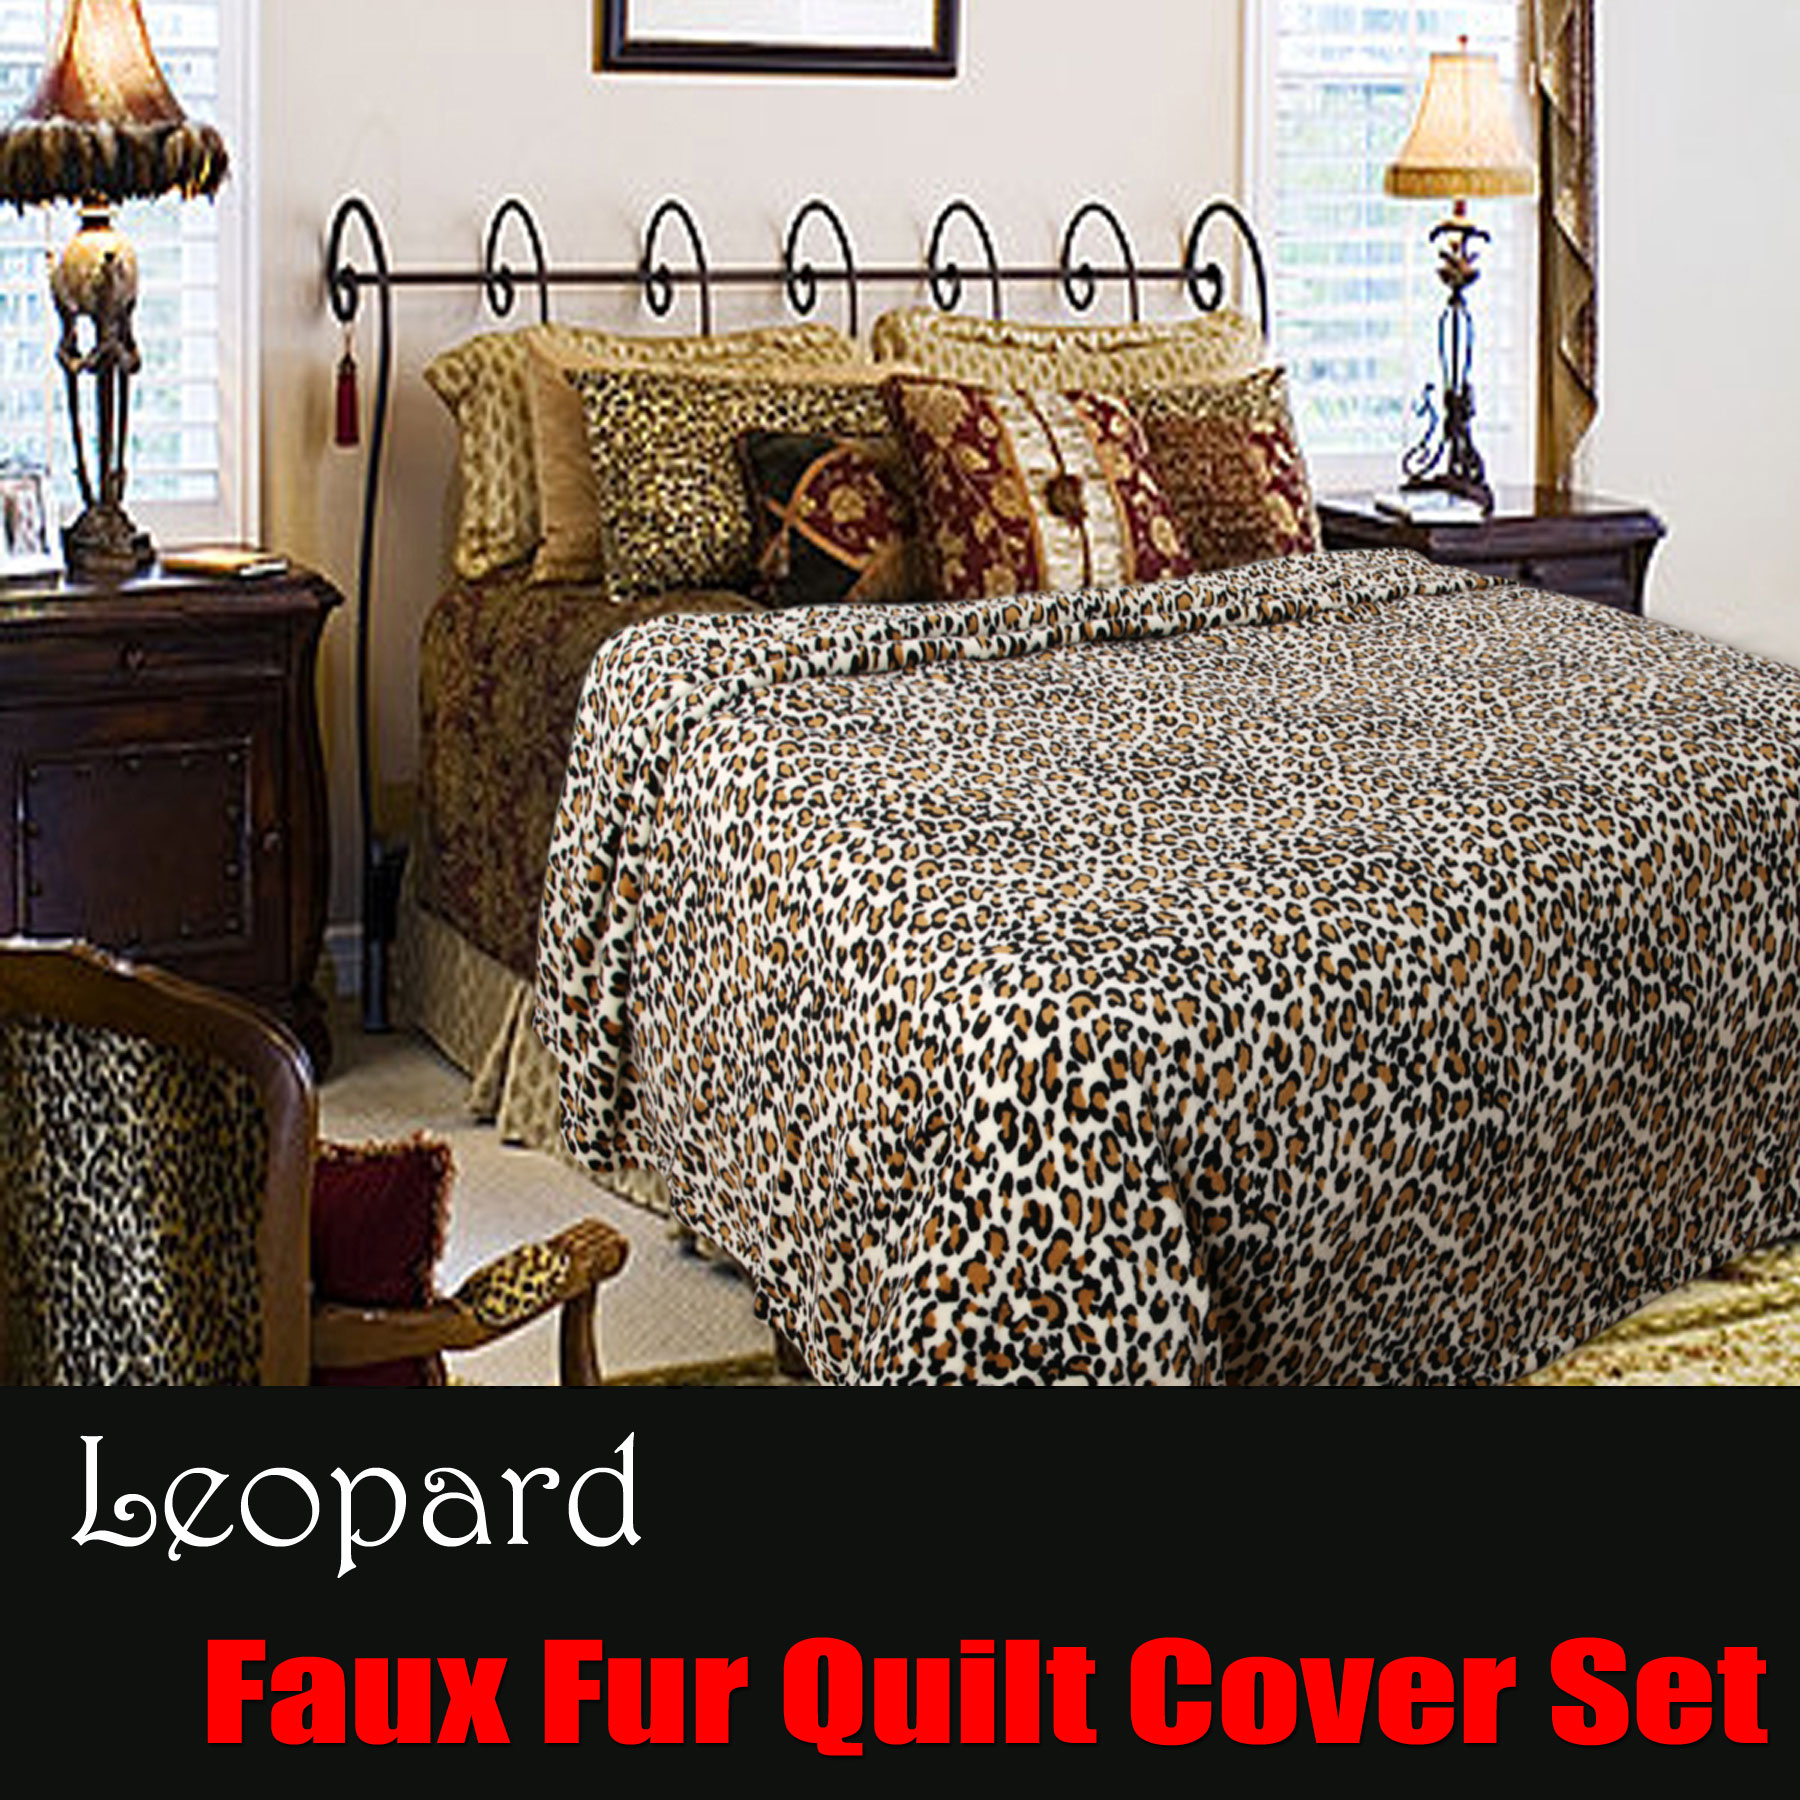 Leopard Printed Faux Fur Animal Quilt Cover Set DOUBLE QUEEN KING ... : leopard quilt cover set - Adamdwight.com